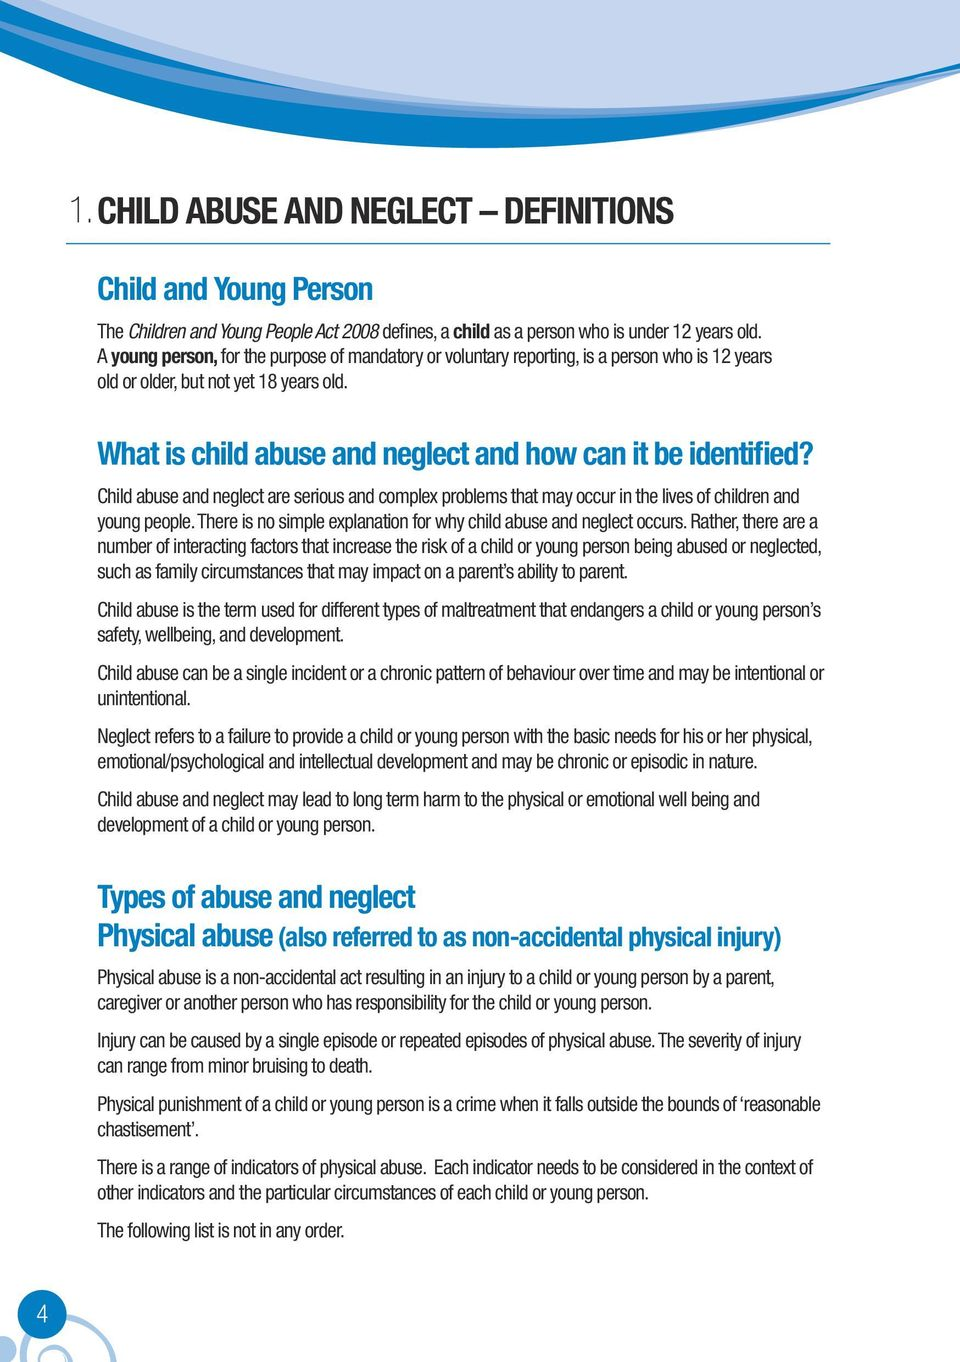 Child abuse and neglect are serious and complex problems that may occur in the lives of children and young people. There is no simple explanation for why child abuse and neglect occurs.